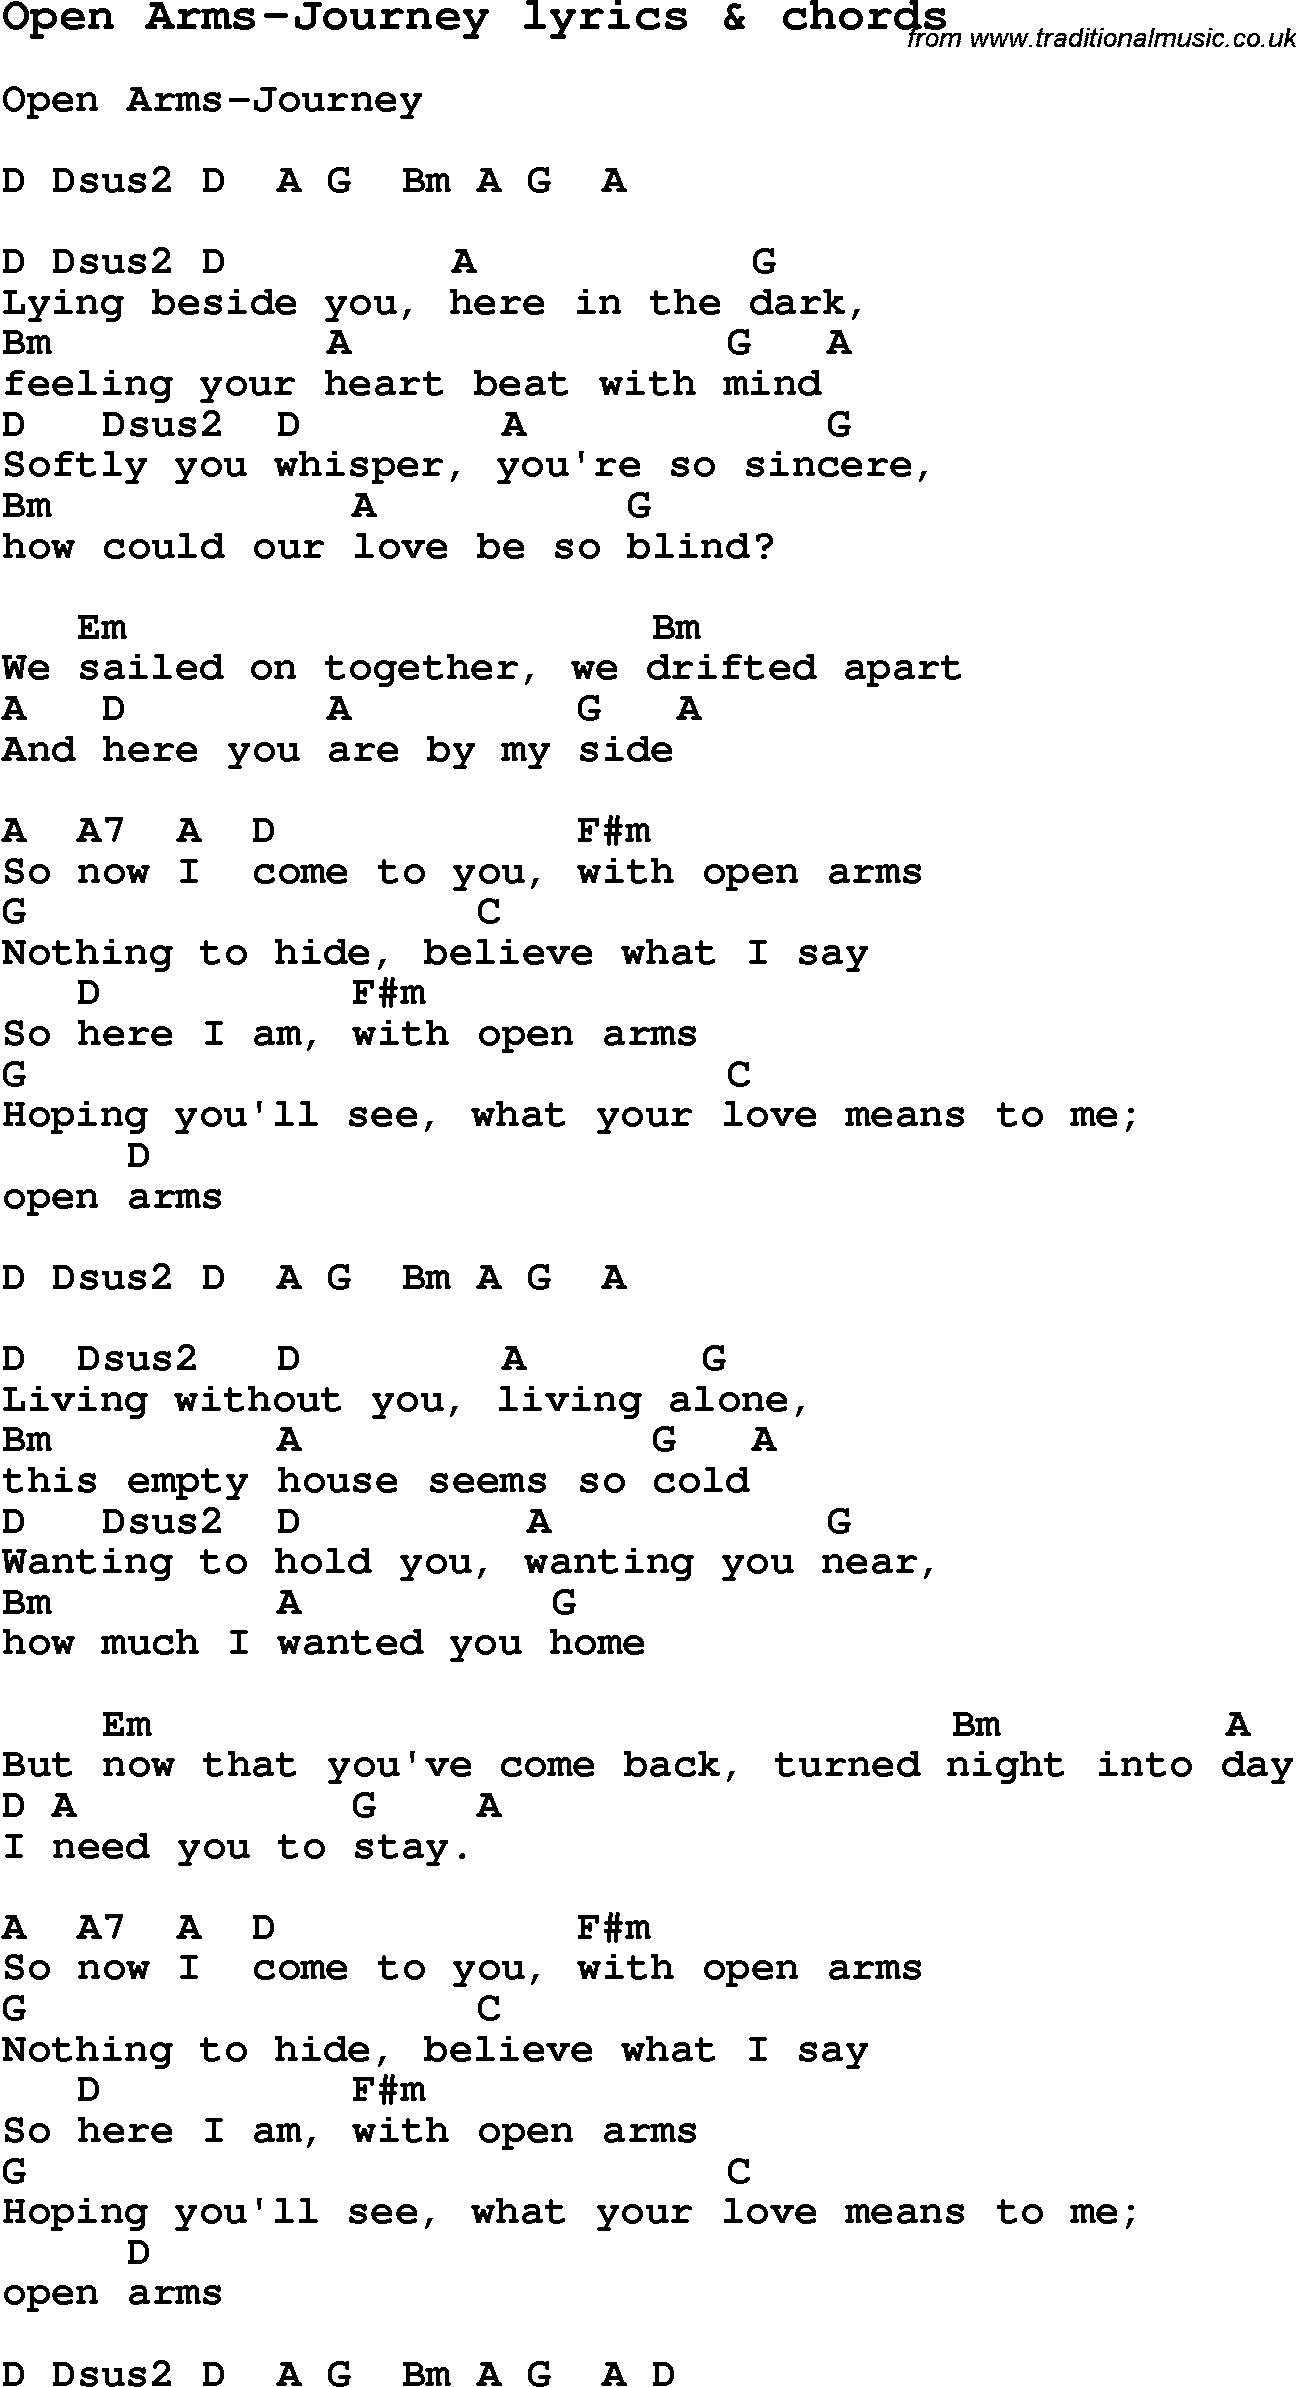 Love song lyrics for open arms journey with chords for ukulele love song lyrics for open arms journey with chords for ukulele guitar banjo hexwebz Gallery